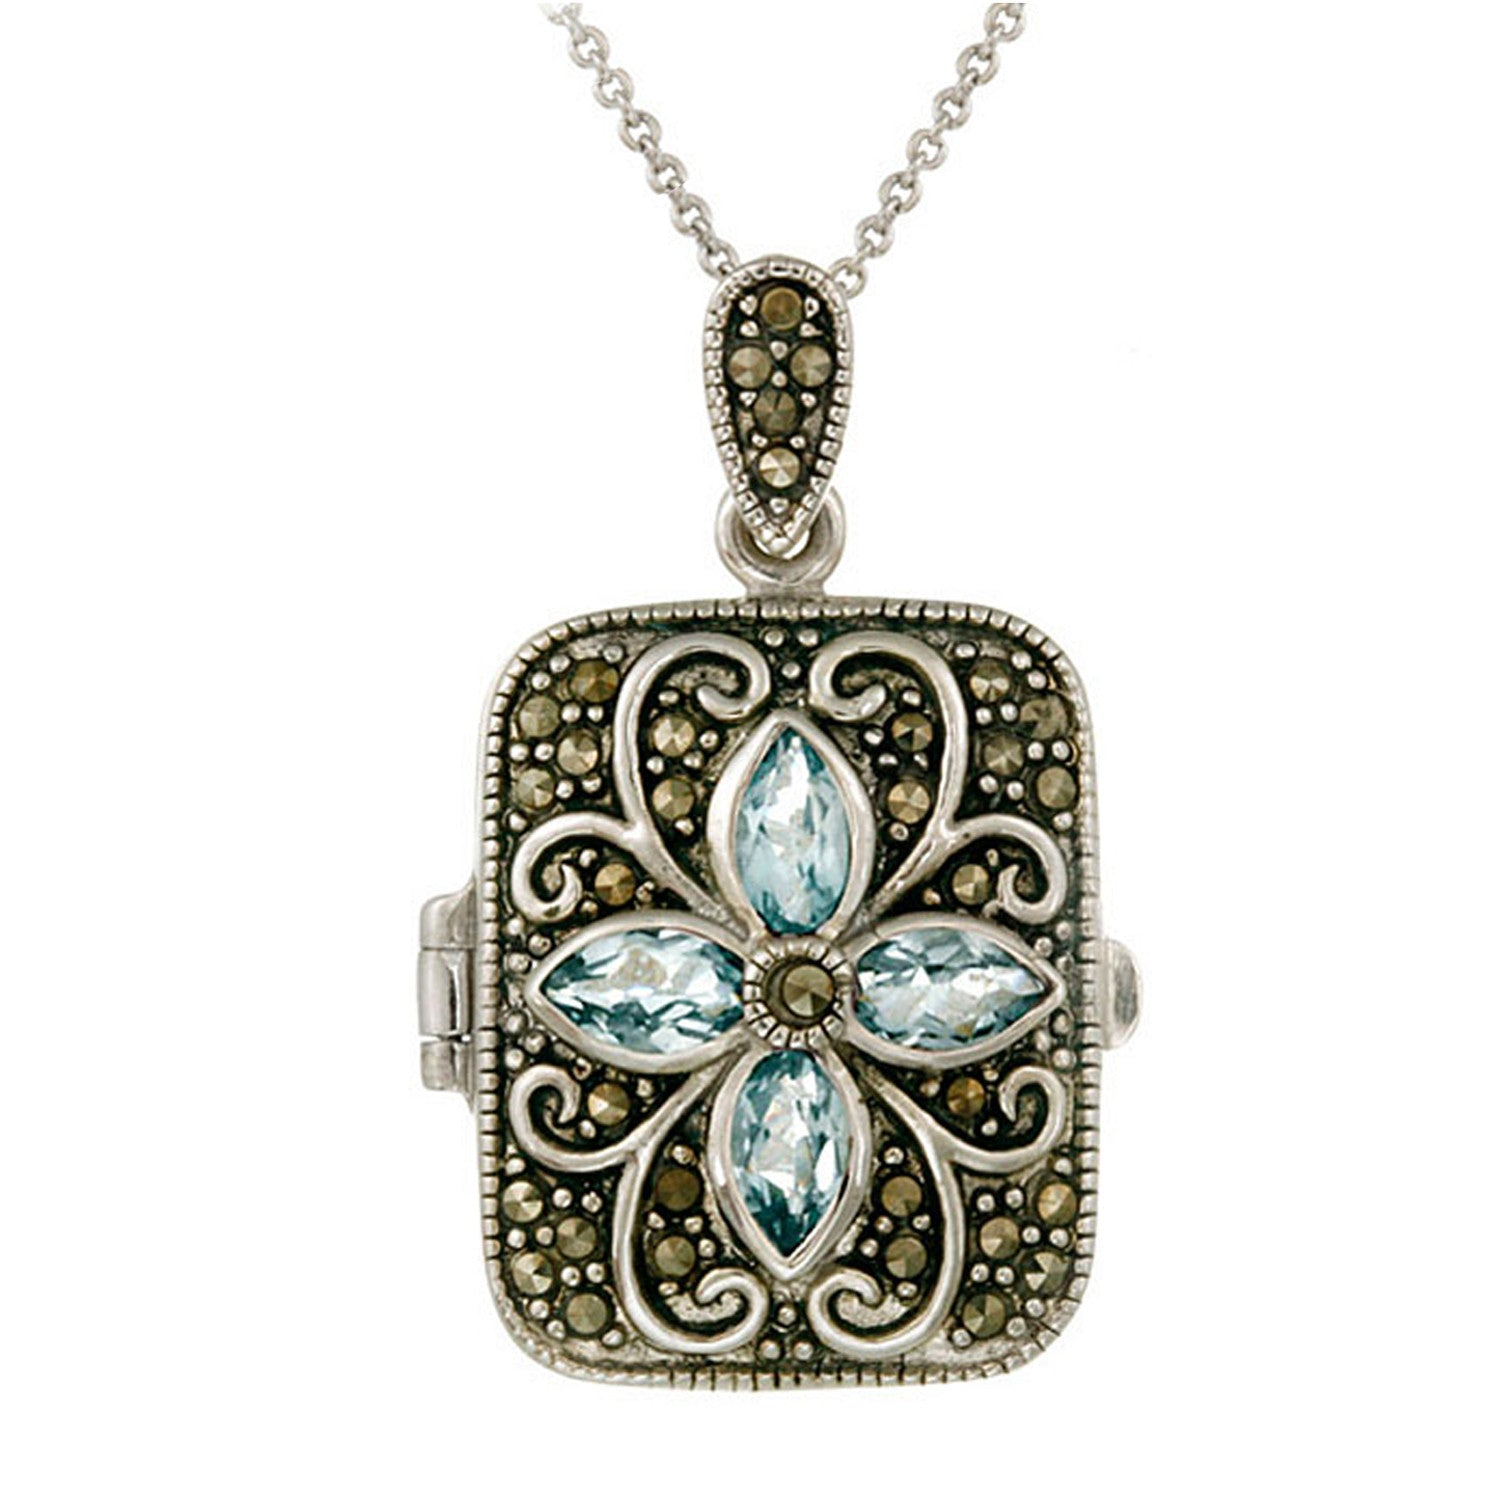 Marcasite & Gemstone Accented Sterling Silver Locket Necklace - Blue Topaz